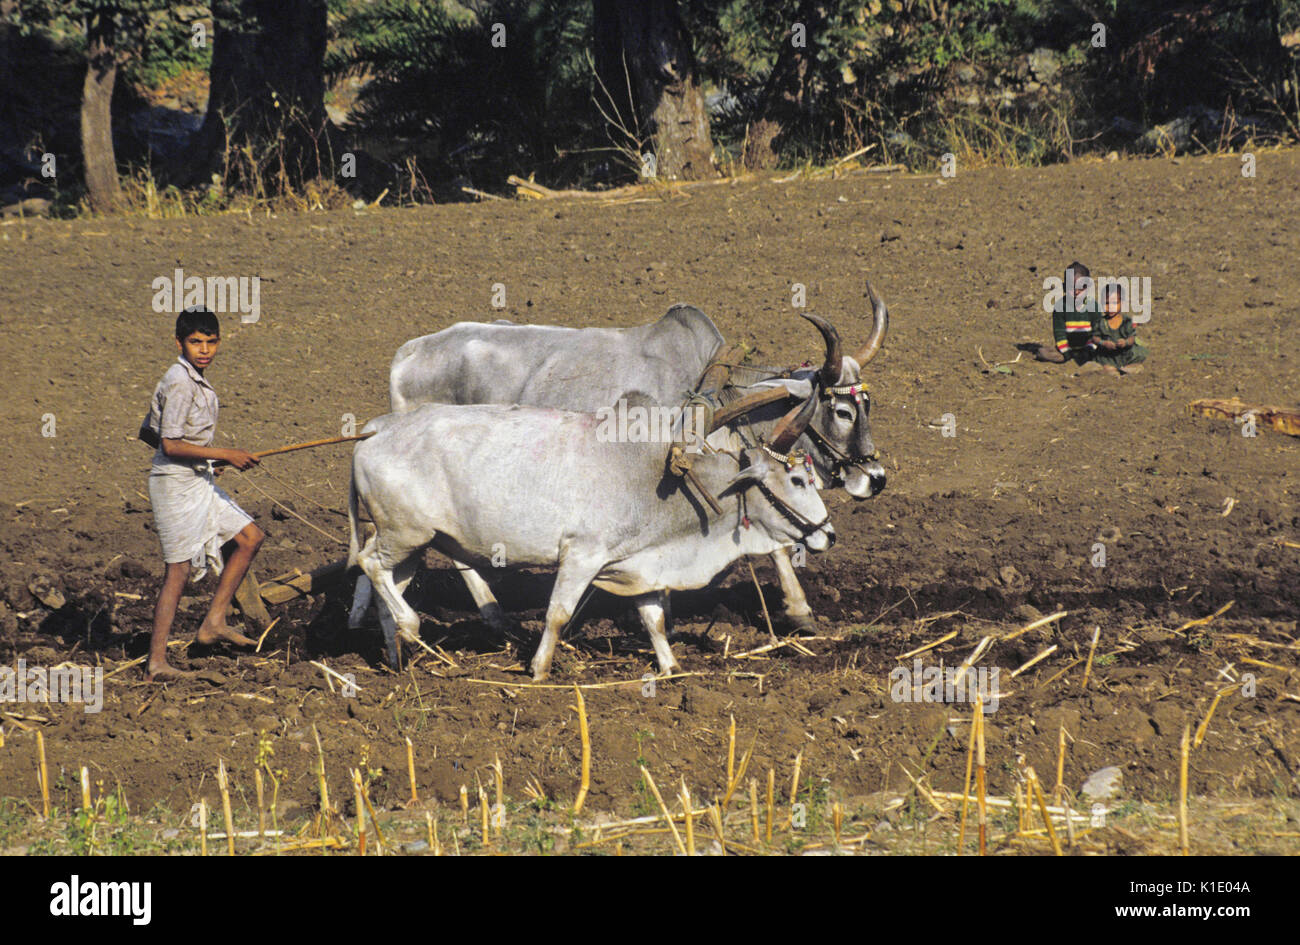 Boy plowing field with bullocks and wood plow, Rajasthan, India - Stock Image